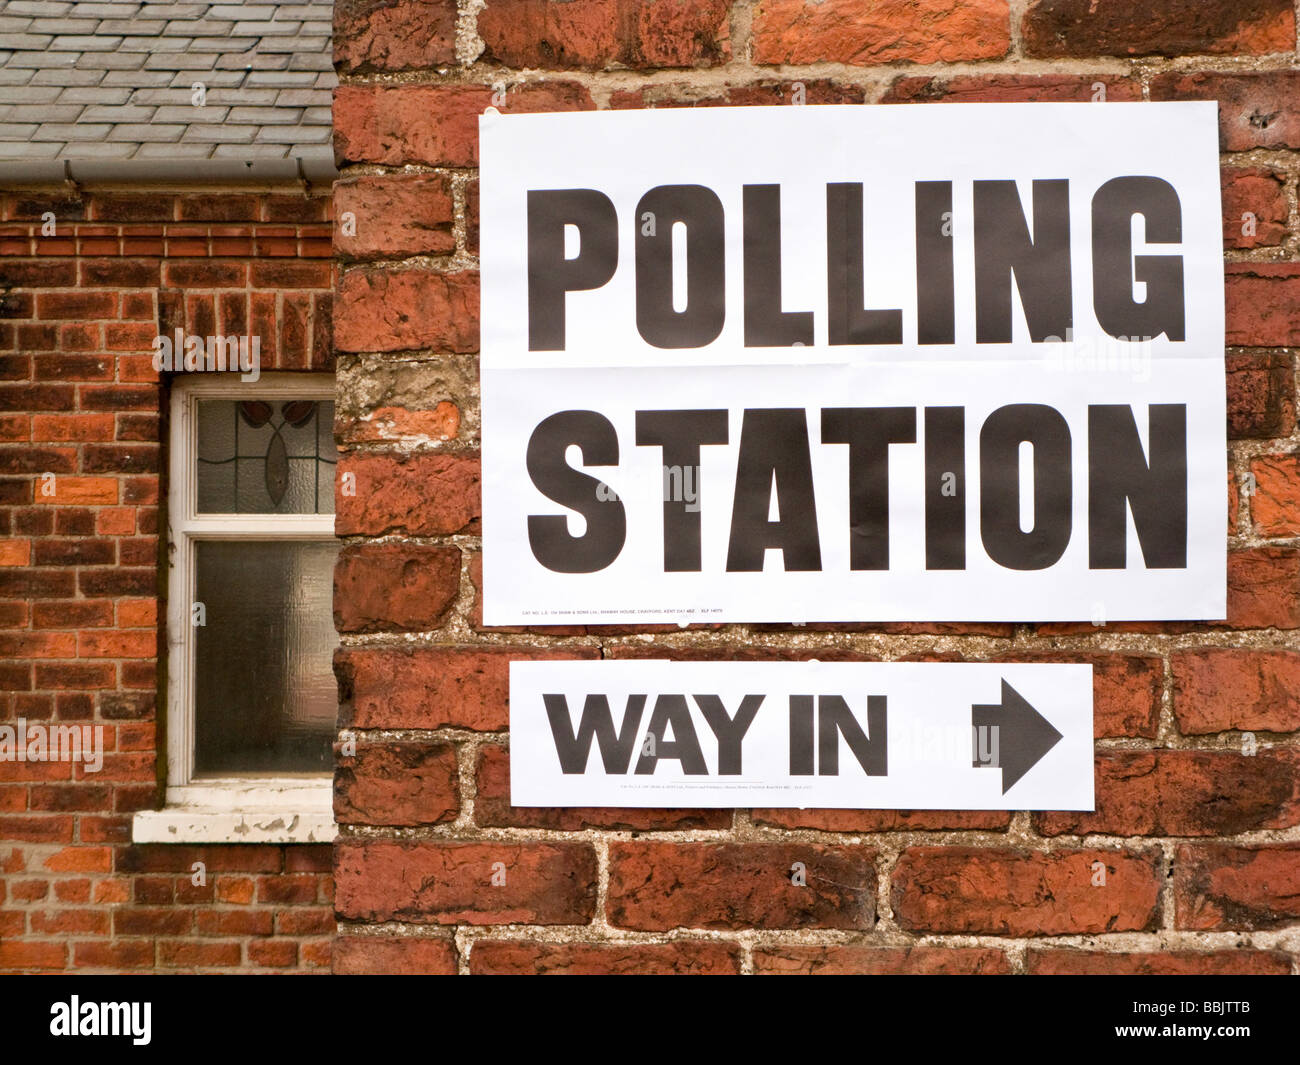 Polling Station, sign in England, UK, General Election - Stock Image